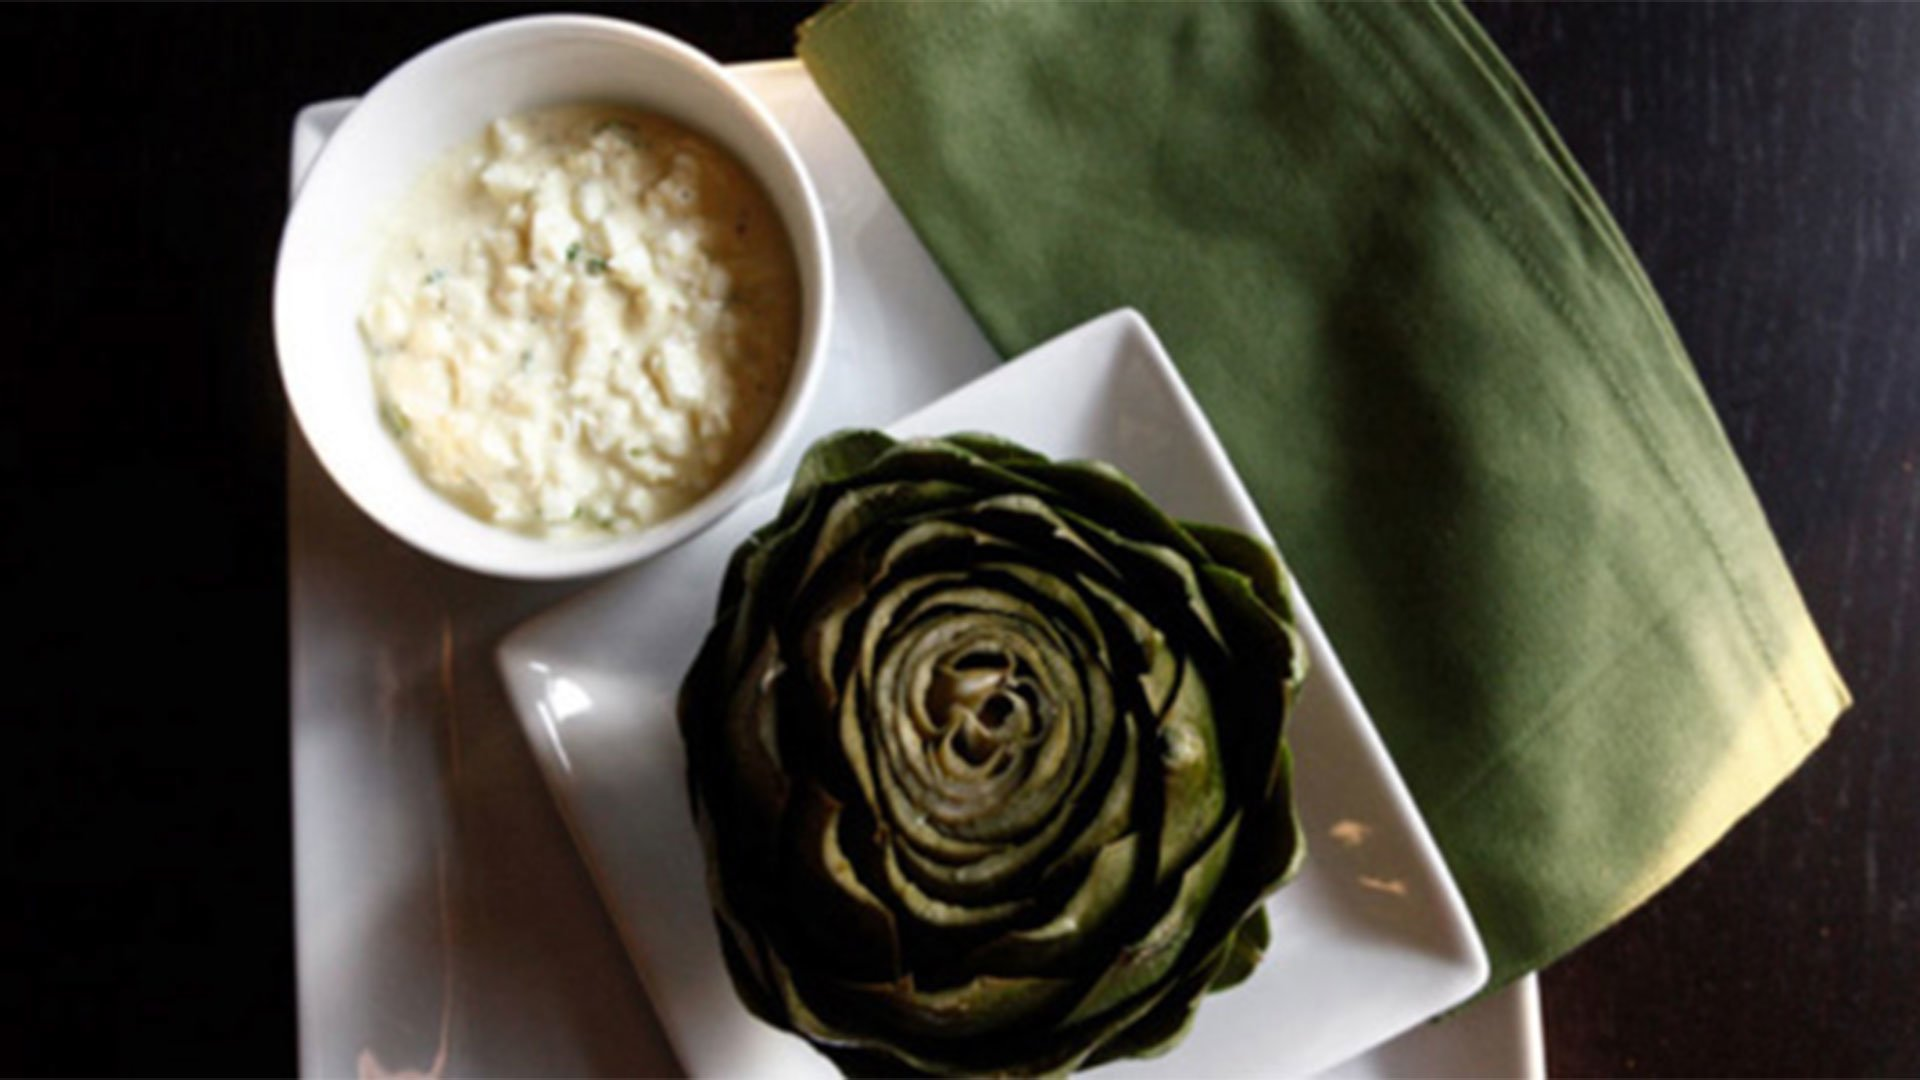 Artichoke and Dipping Sauce